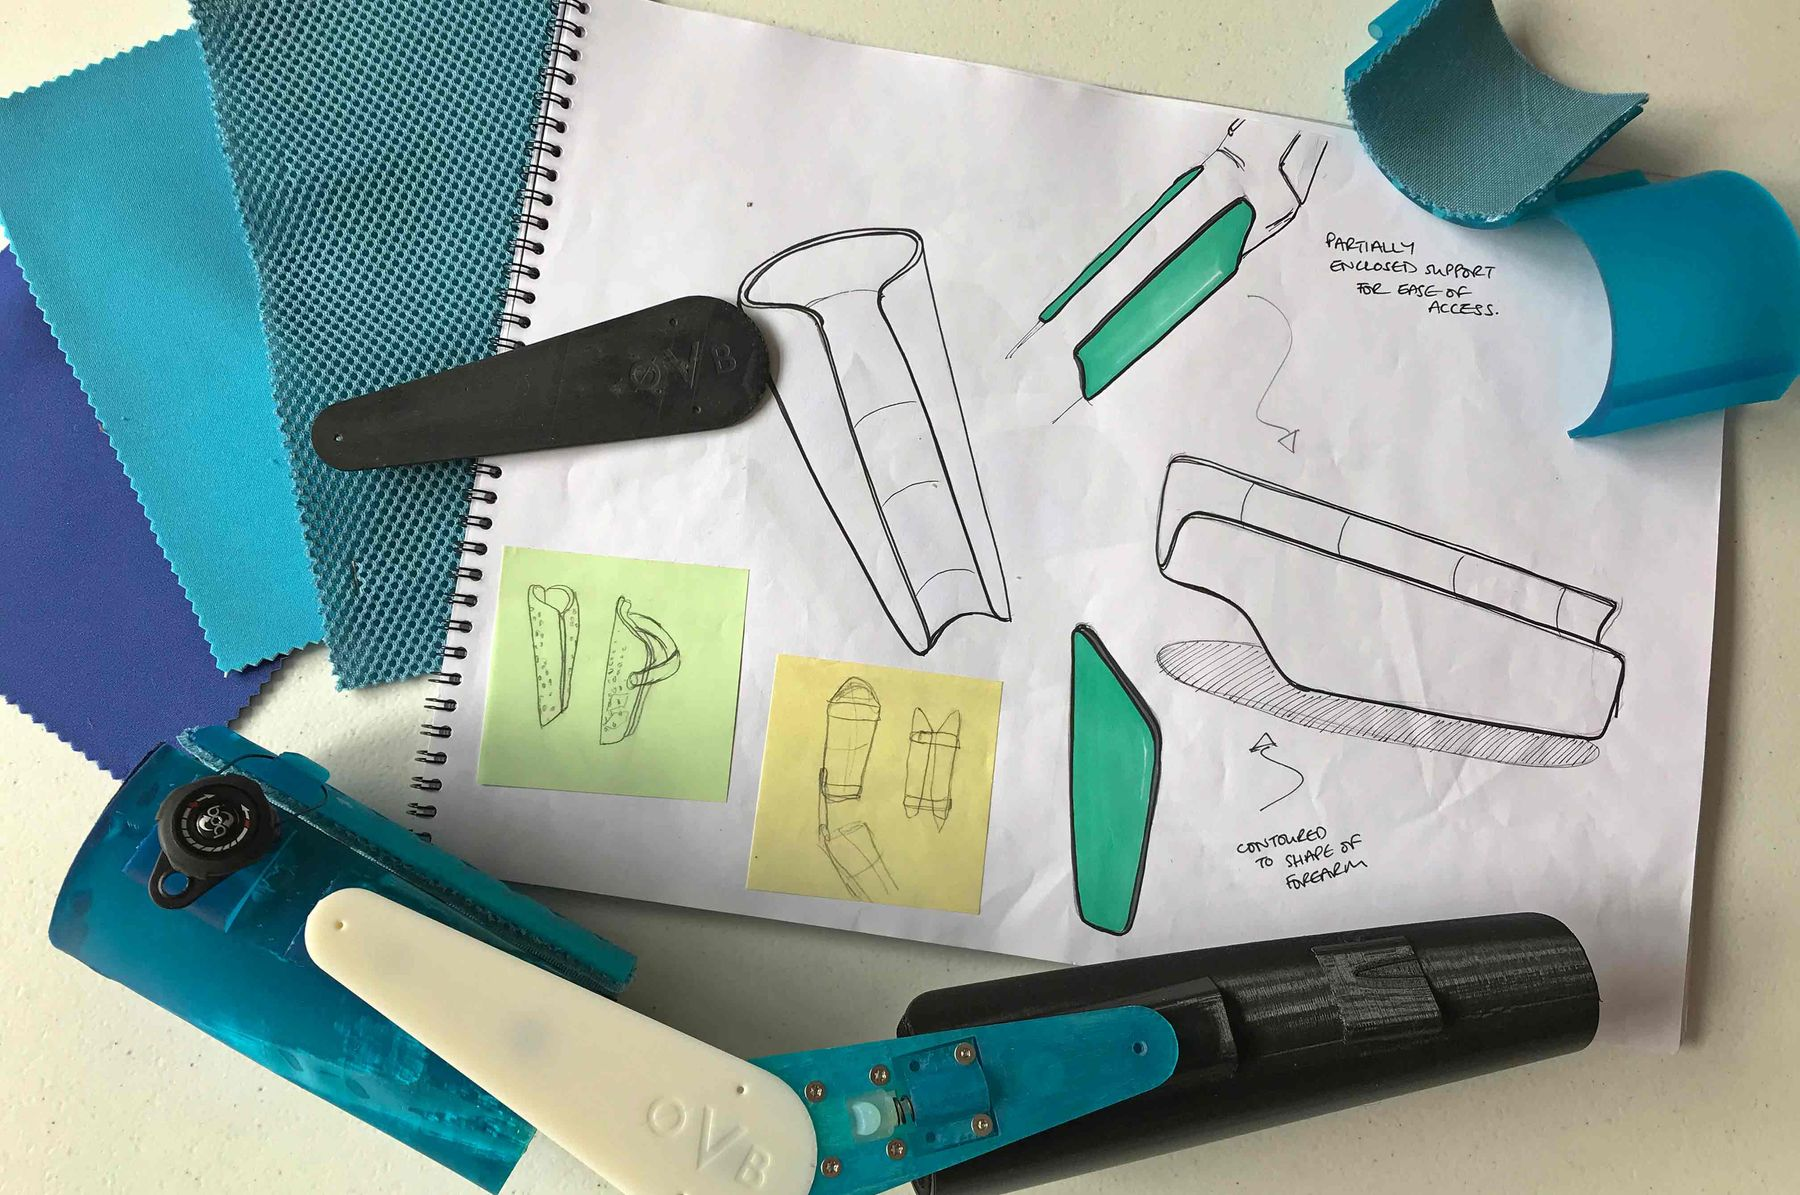 The OVB Arm Brace, Olivia's sketches and layout ideas, BSc (Hons) Product Design, 2019.